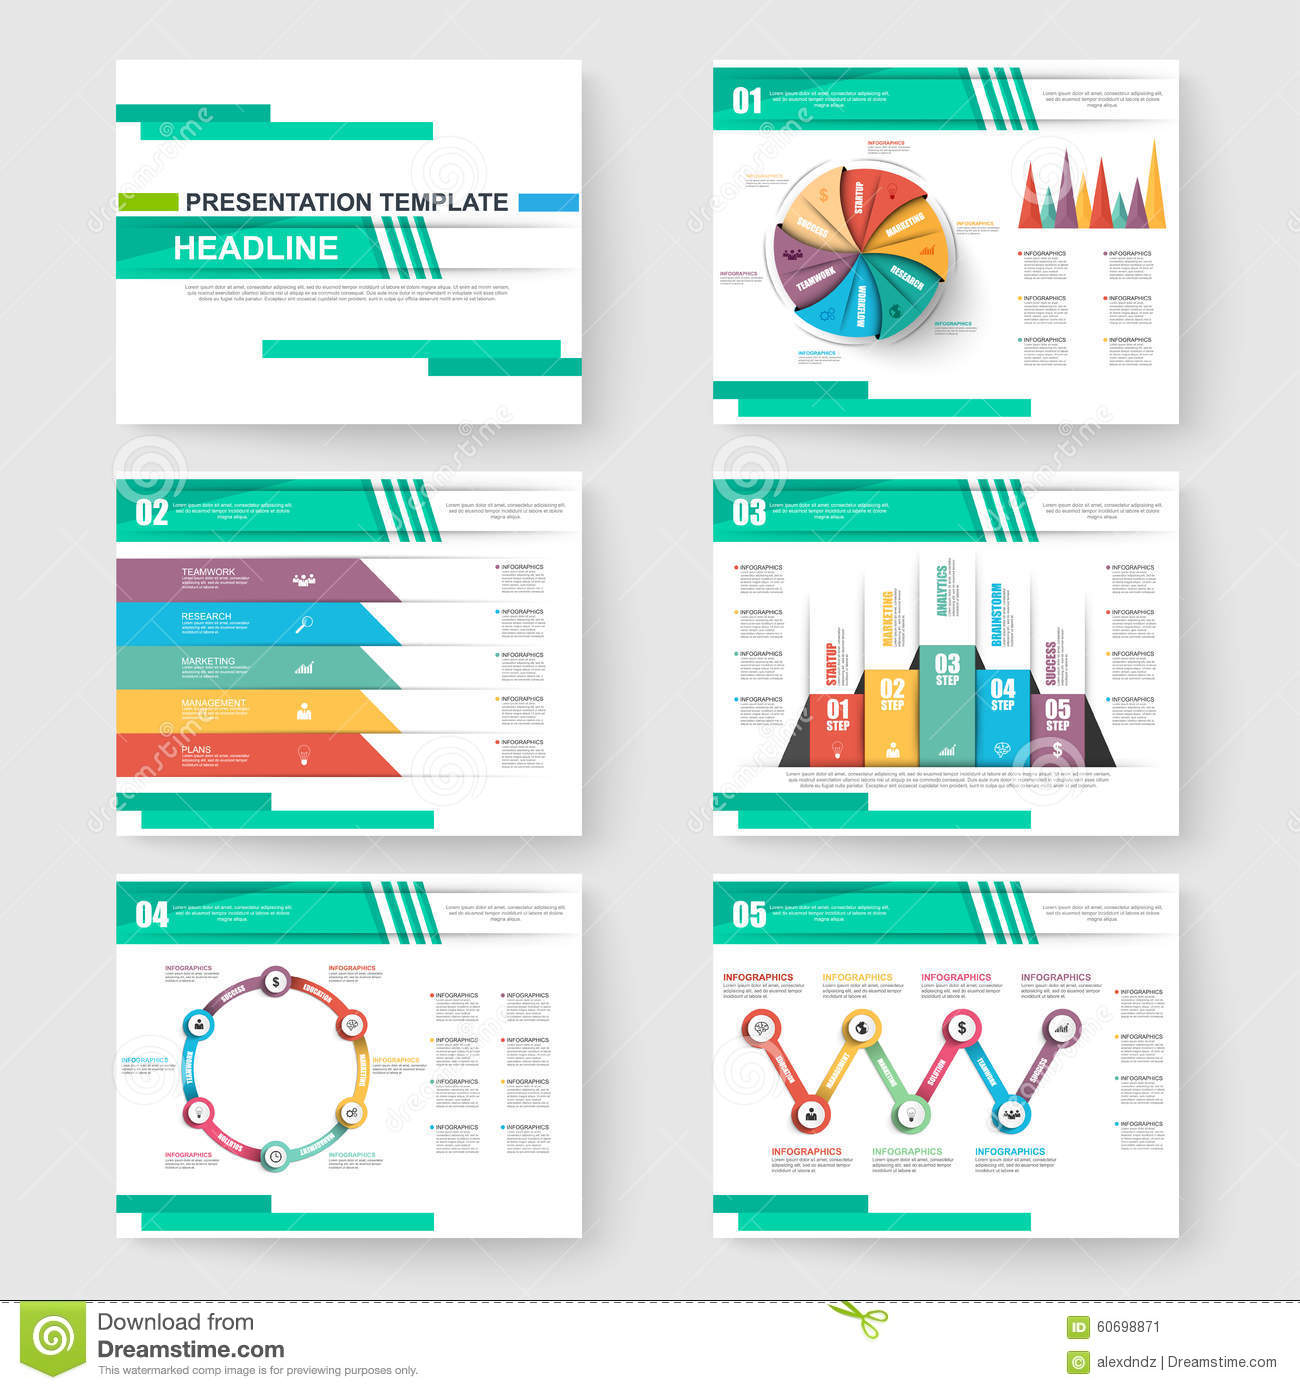 Set of presentation slide templates powerpoint stock for Stock market ppt templates free download